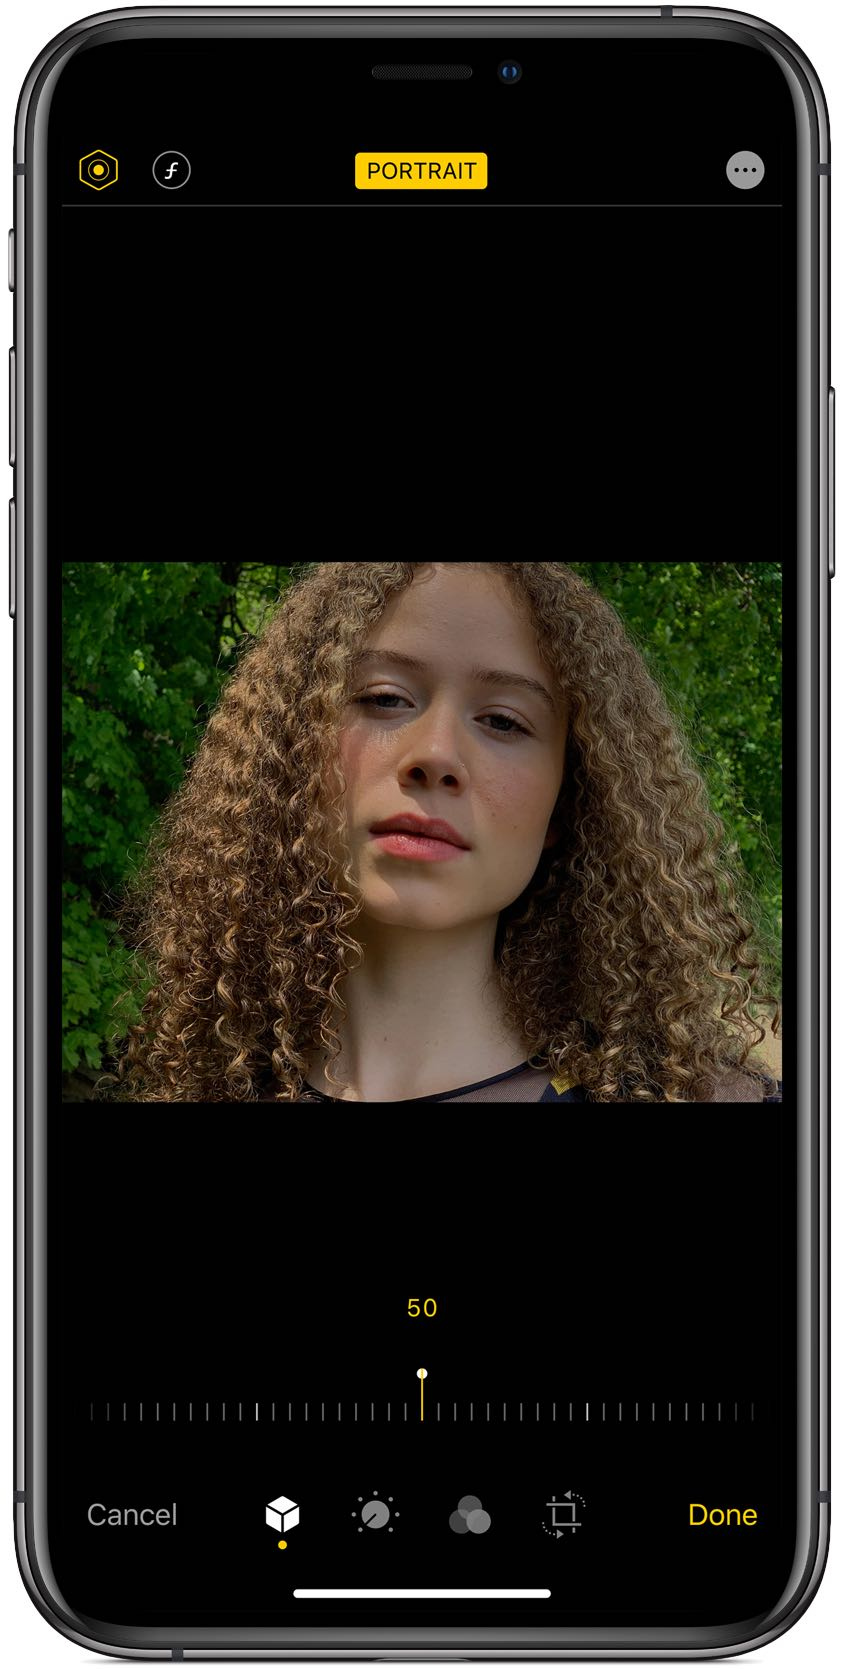 Portrait Lighting intensity can be adjusted in the Camera and Photos apps on iOS 13.